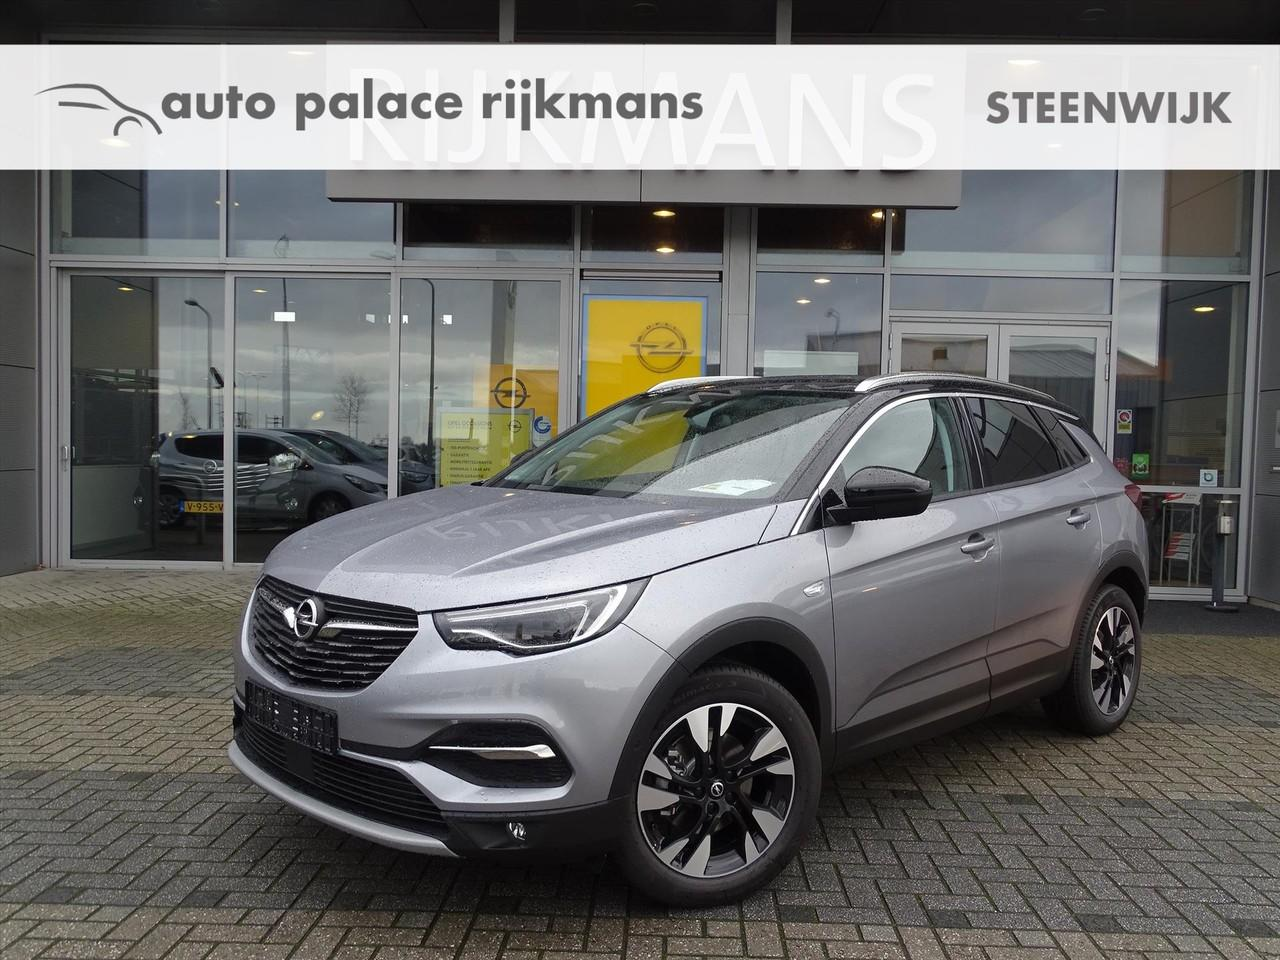 Opel Grandland x Ultimate 1.2t 130 pk 8traps automaat - led - navi - compleet